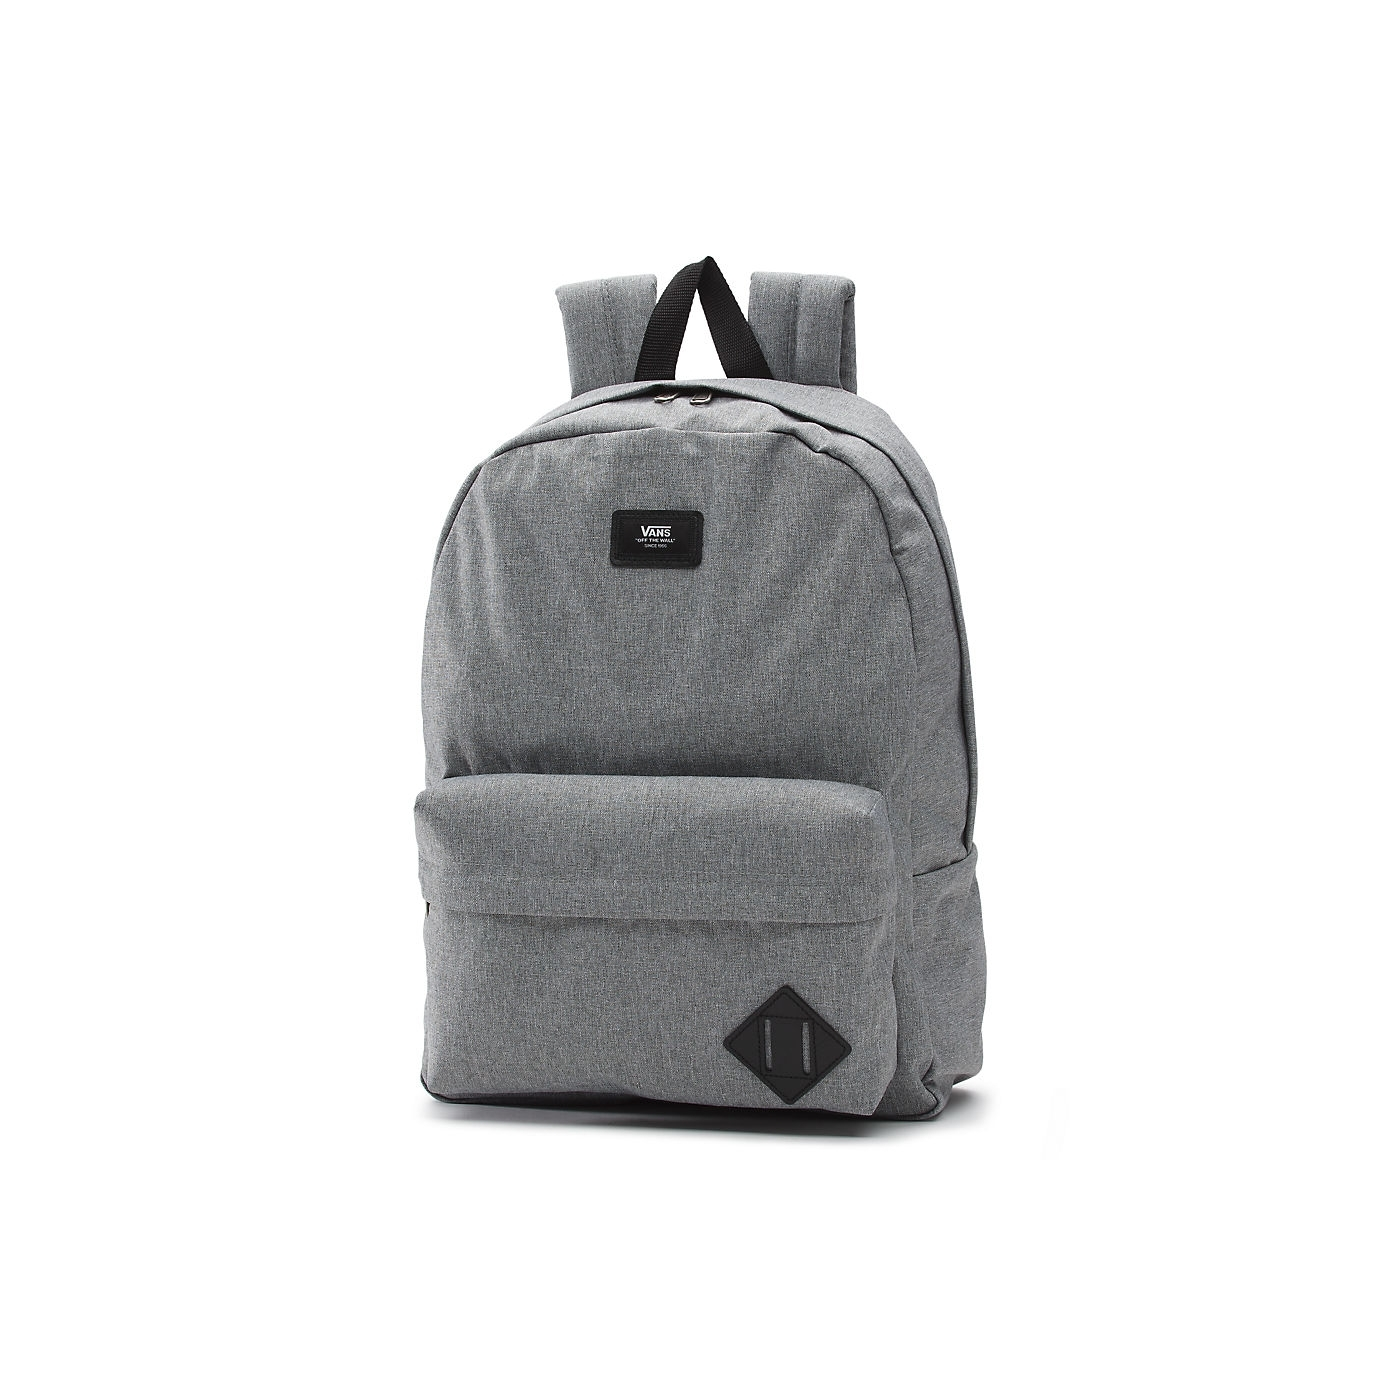 d279f39a17 Sac À Dos Vans Old Skool Ii Heather Suiting